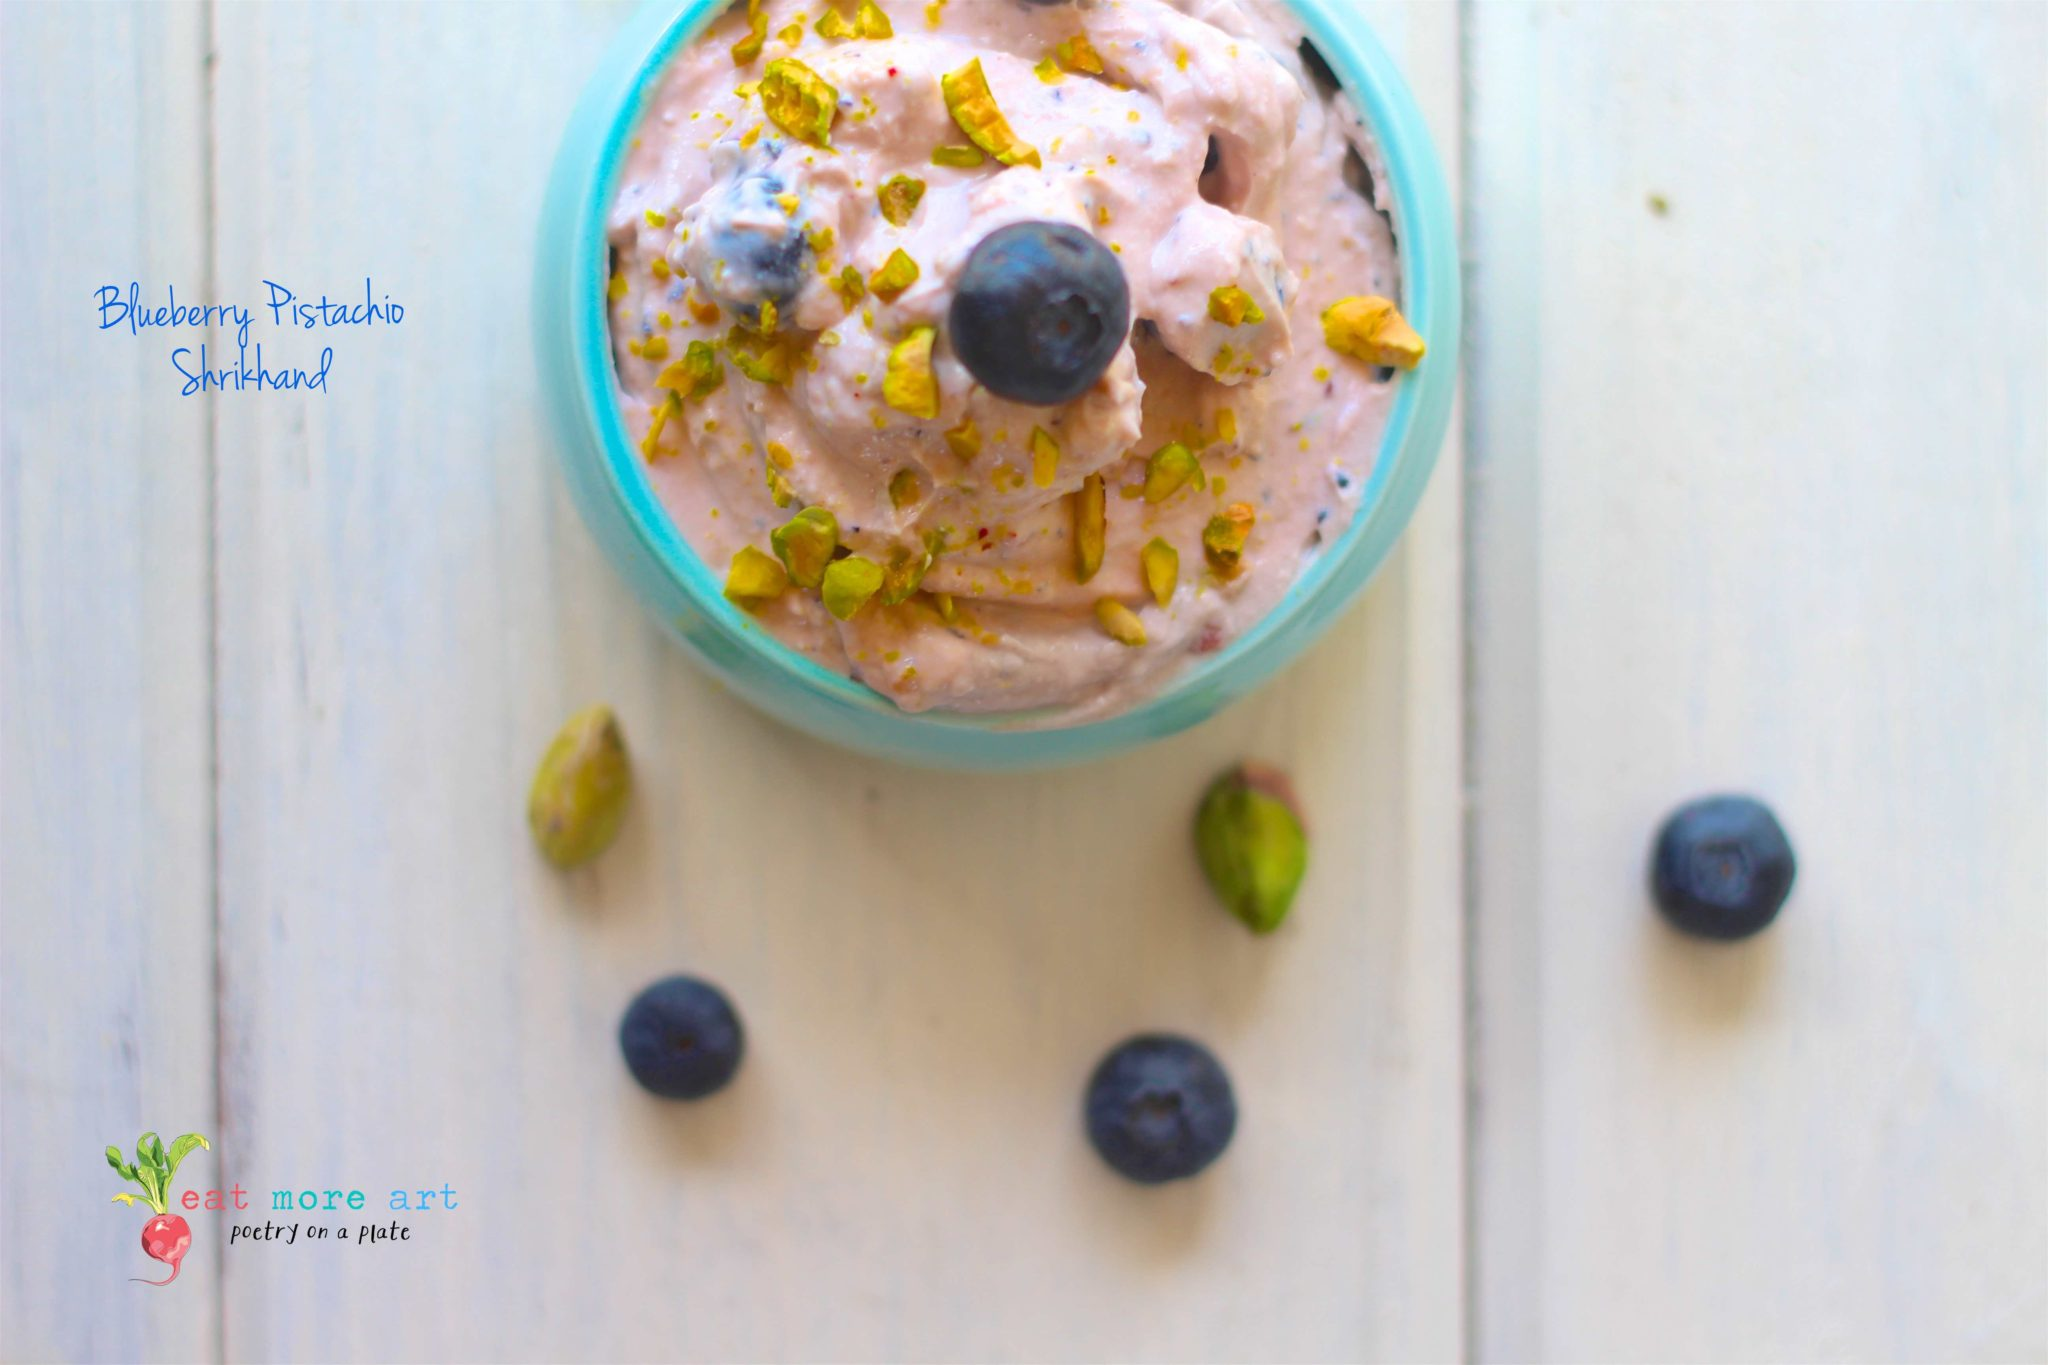 an overhead shot of lavender color Pistachio Blueberry Shrikhand served in a baby blue bowl on a white backdrop with pistachios and blueberries scattered around